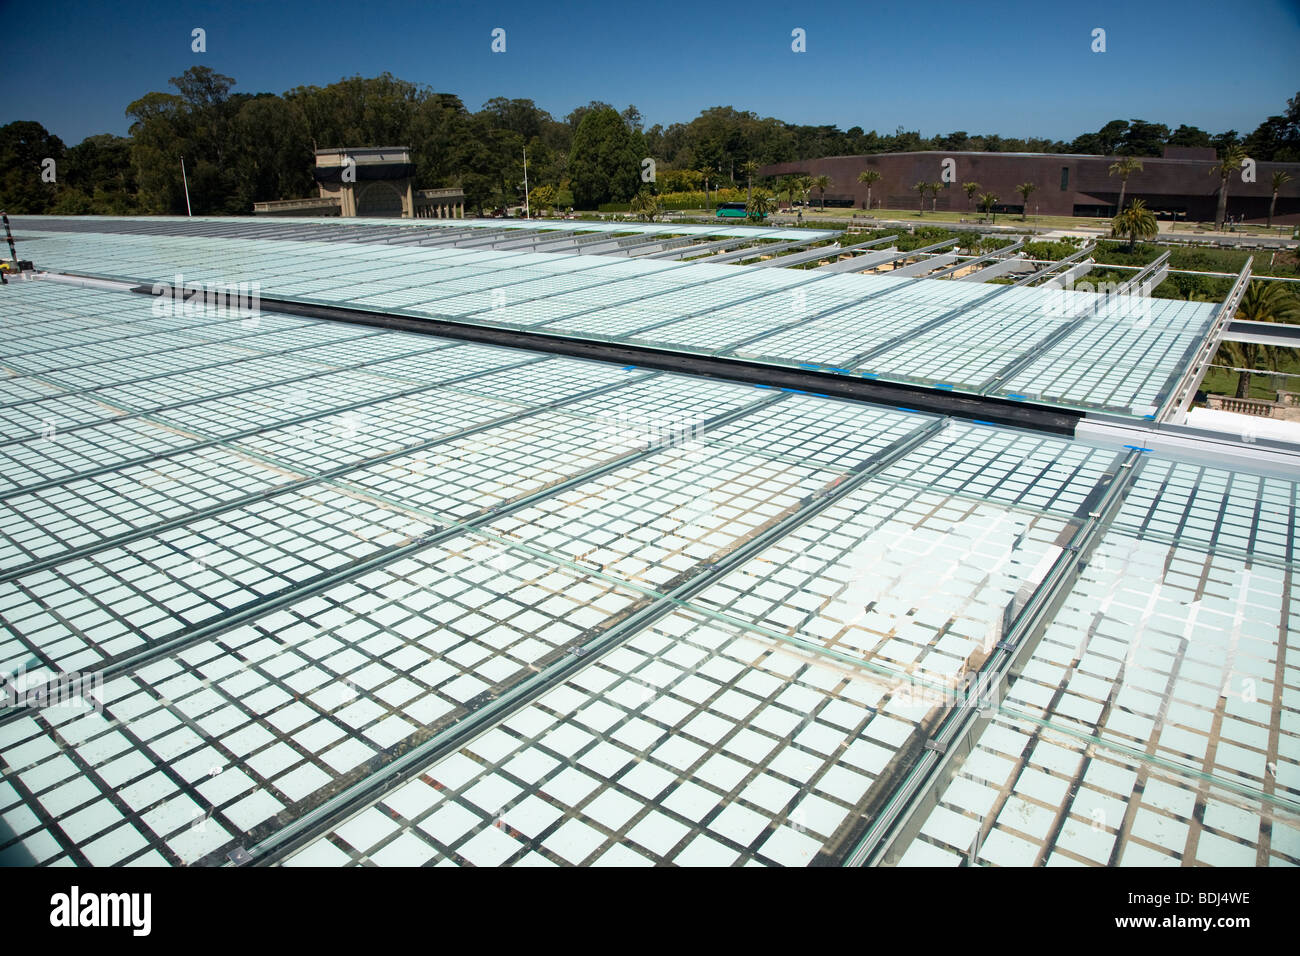 Solar Panels at California Academy of Science - Stock Image